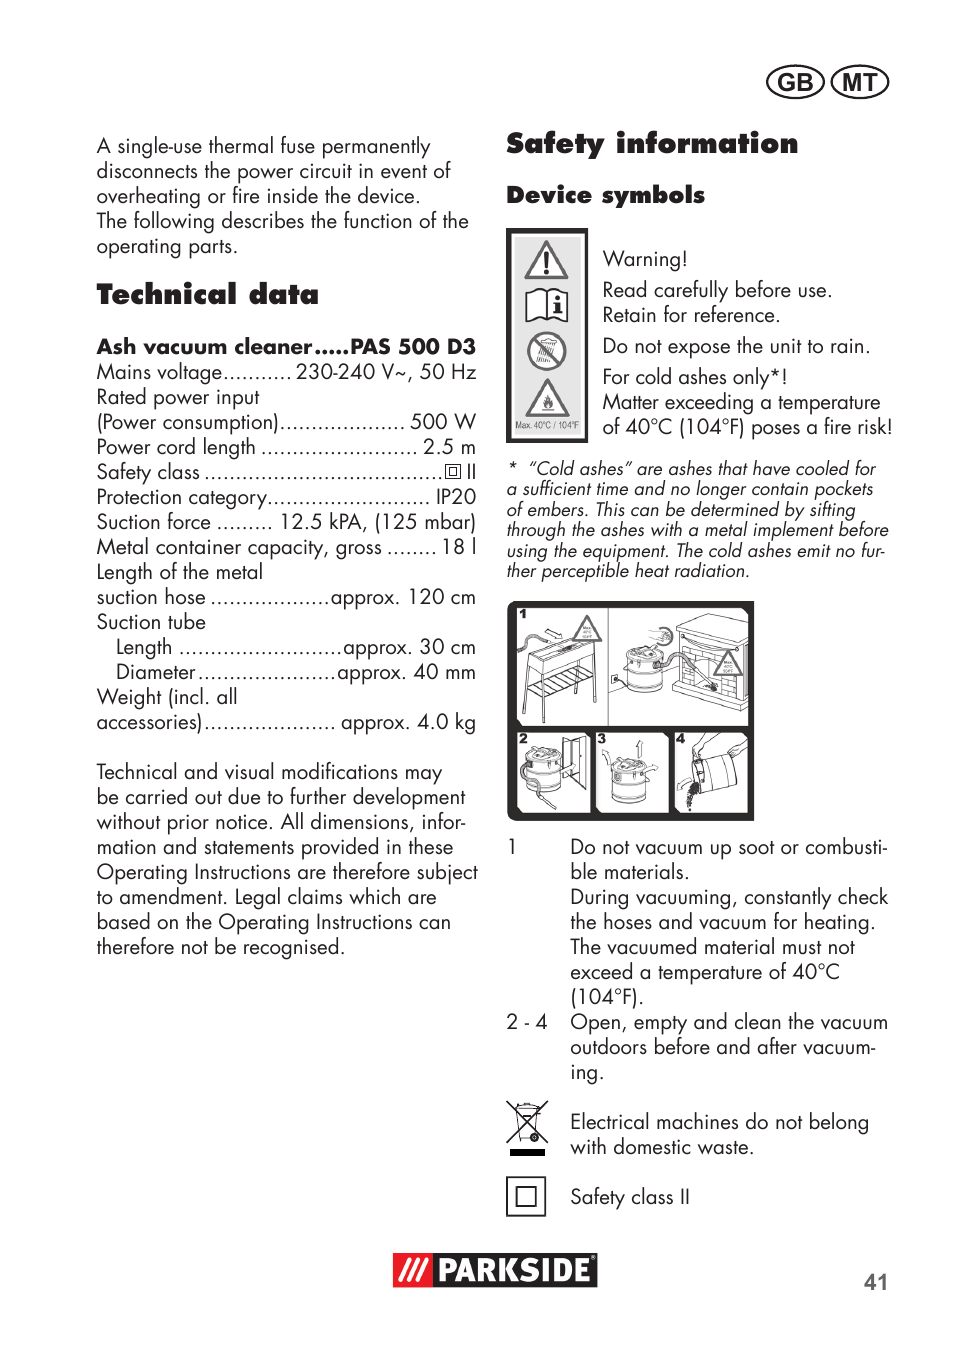 Technical Data Safety Information Gb Mt Parkside Pas 500 D3 User Cold Electricity Circuit Manual Page 41 66